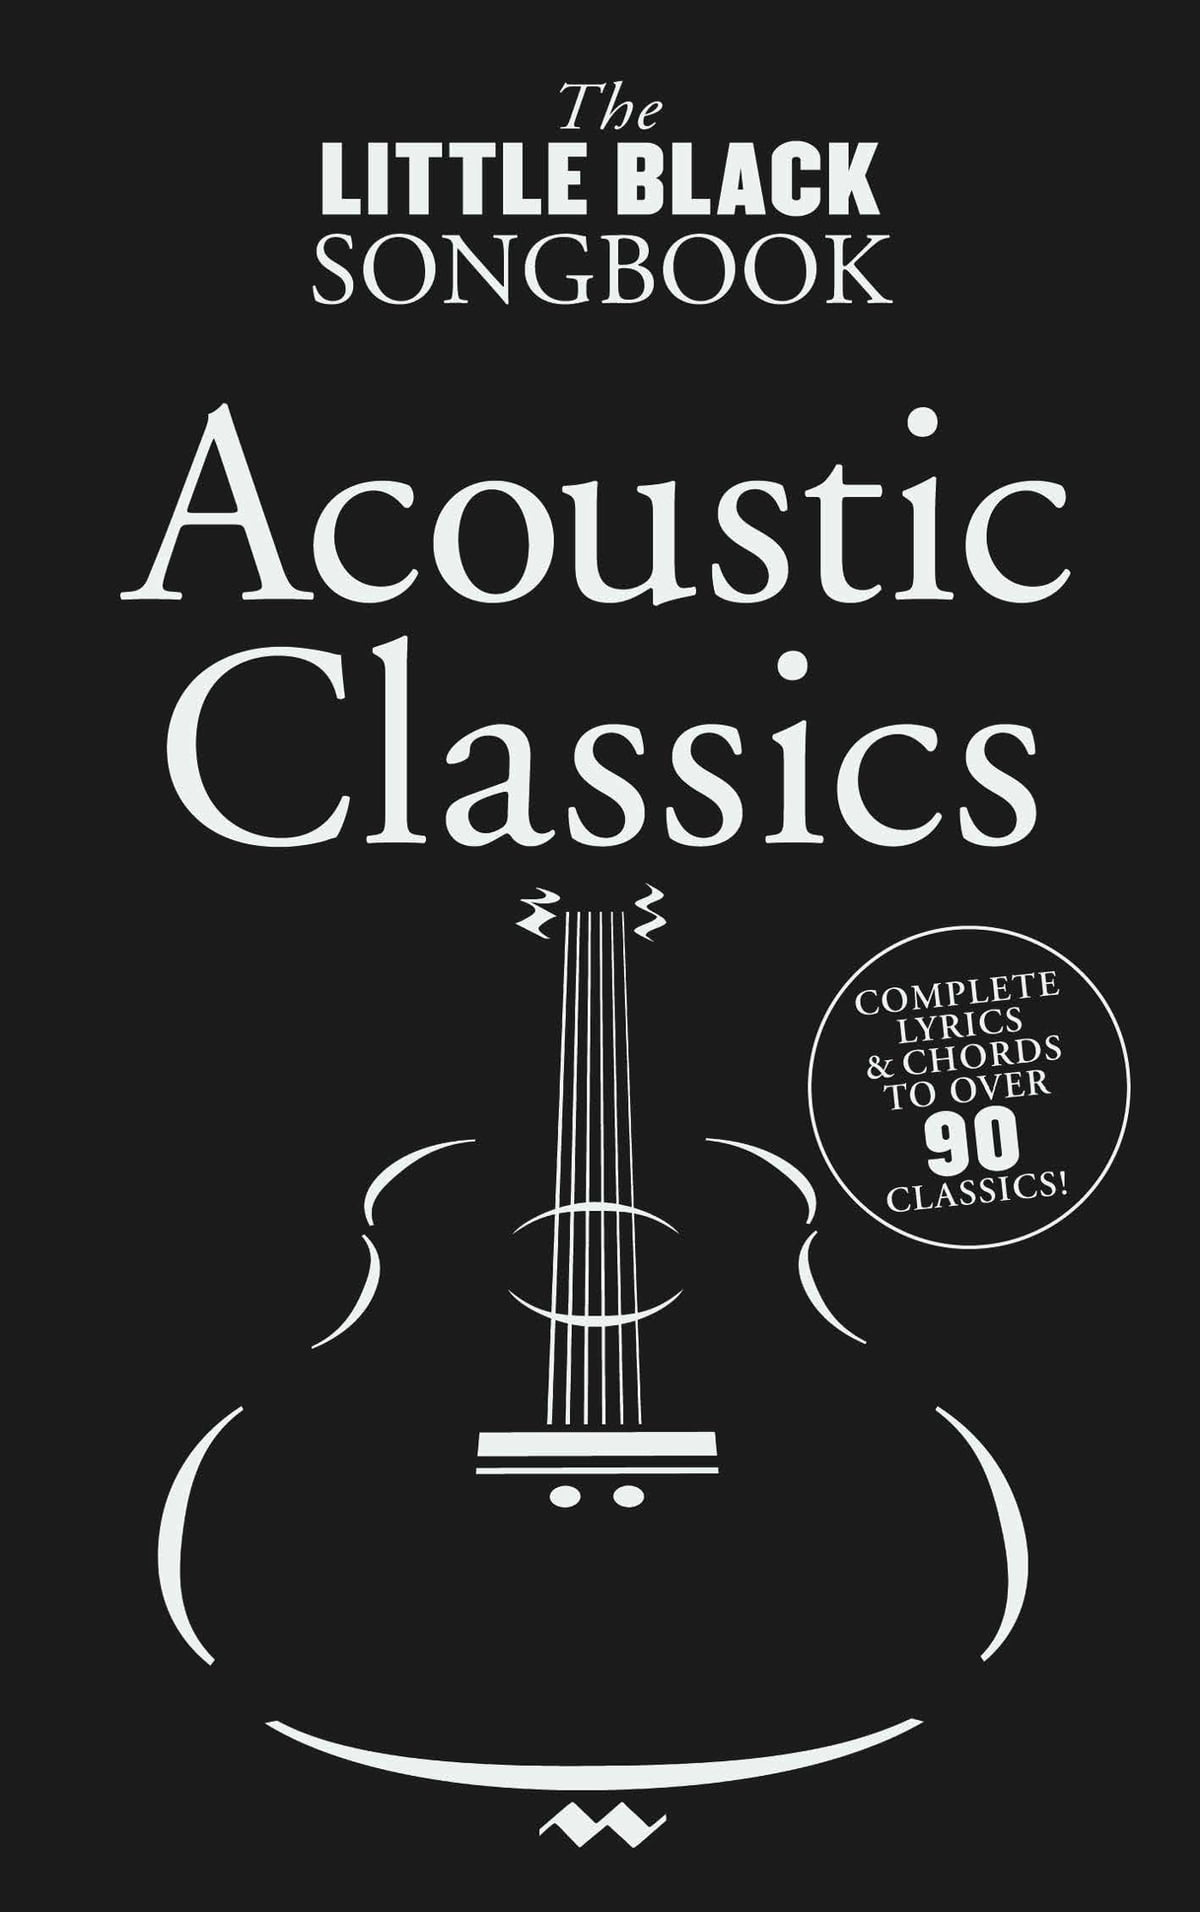 The Little Black Songbook Acoustic Classics Ebook By Wise